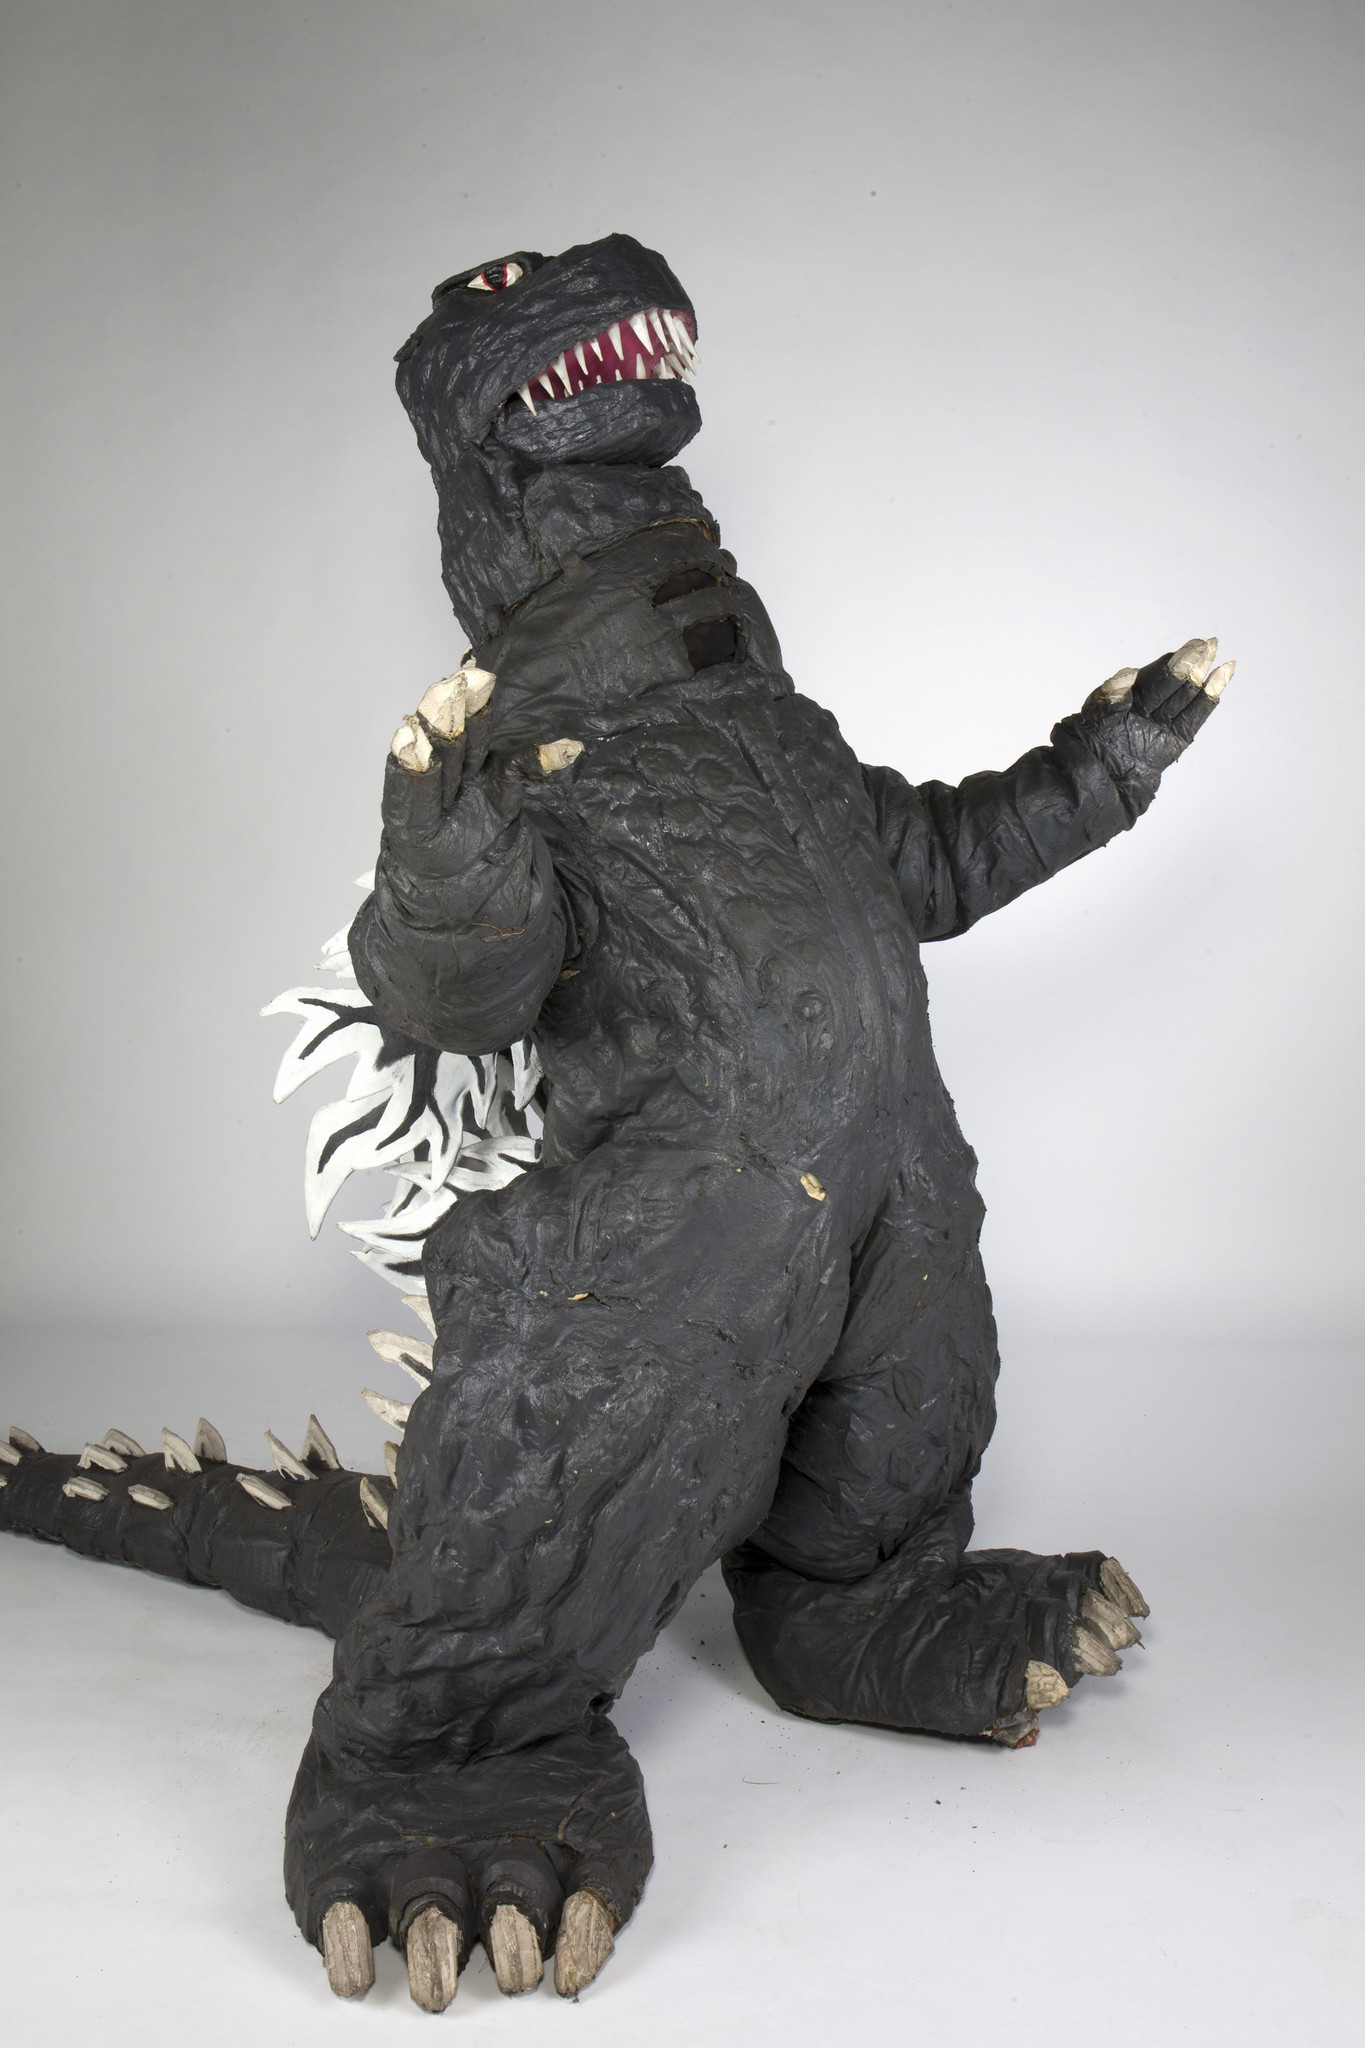 'Godzilla Battle Royale' costumes - Chicago Tribune